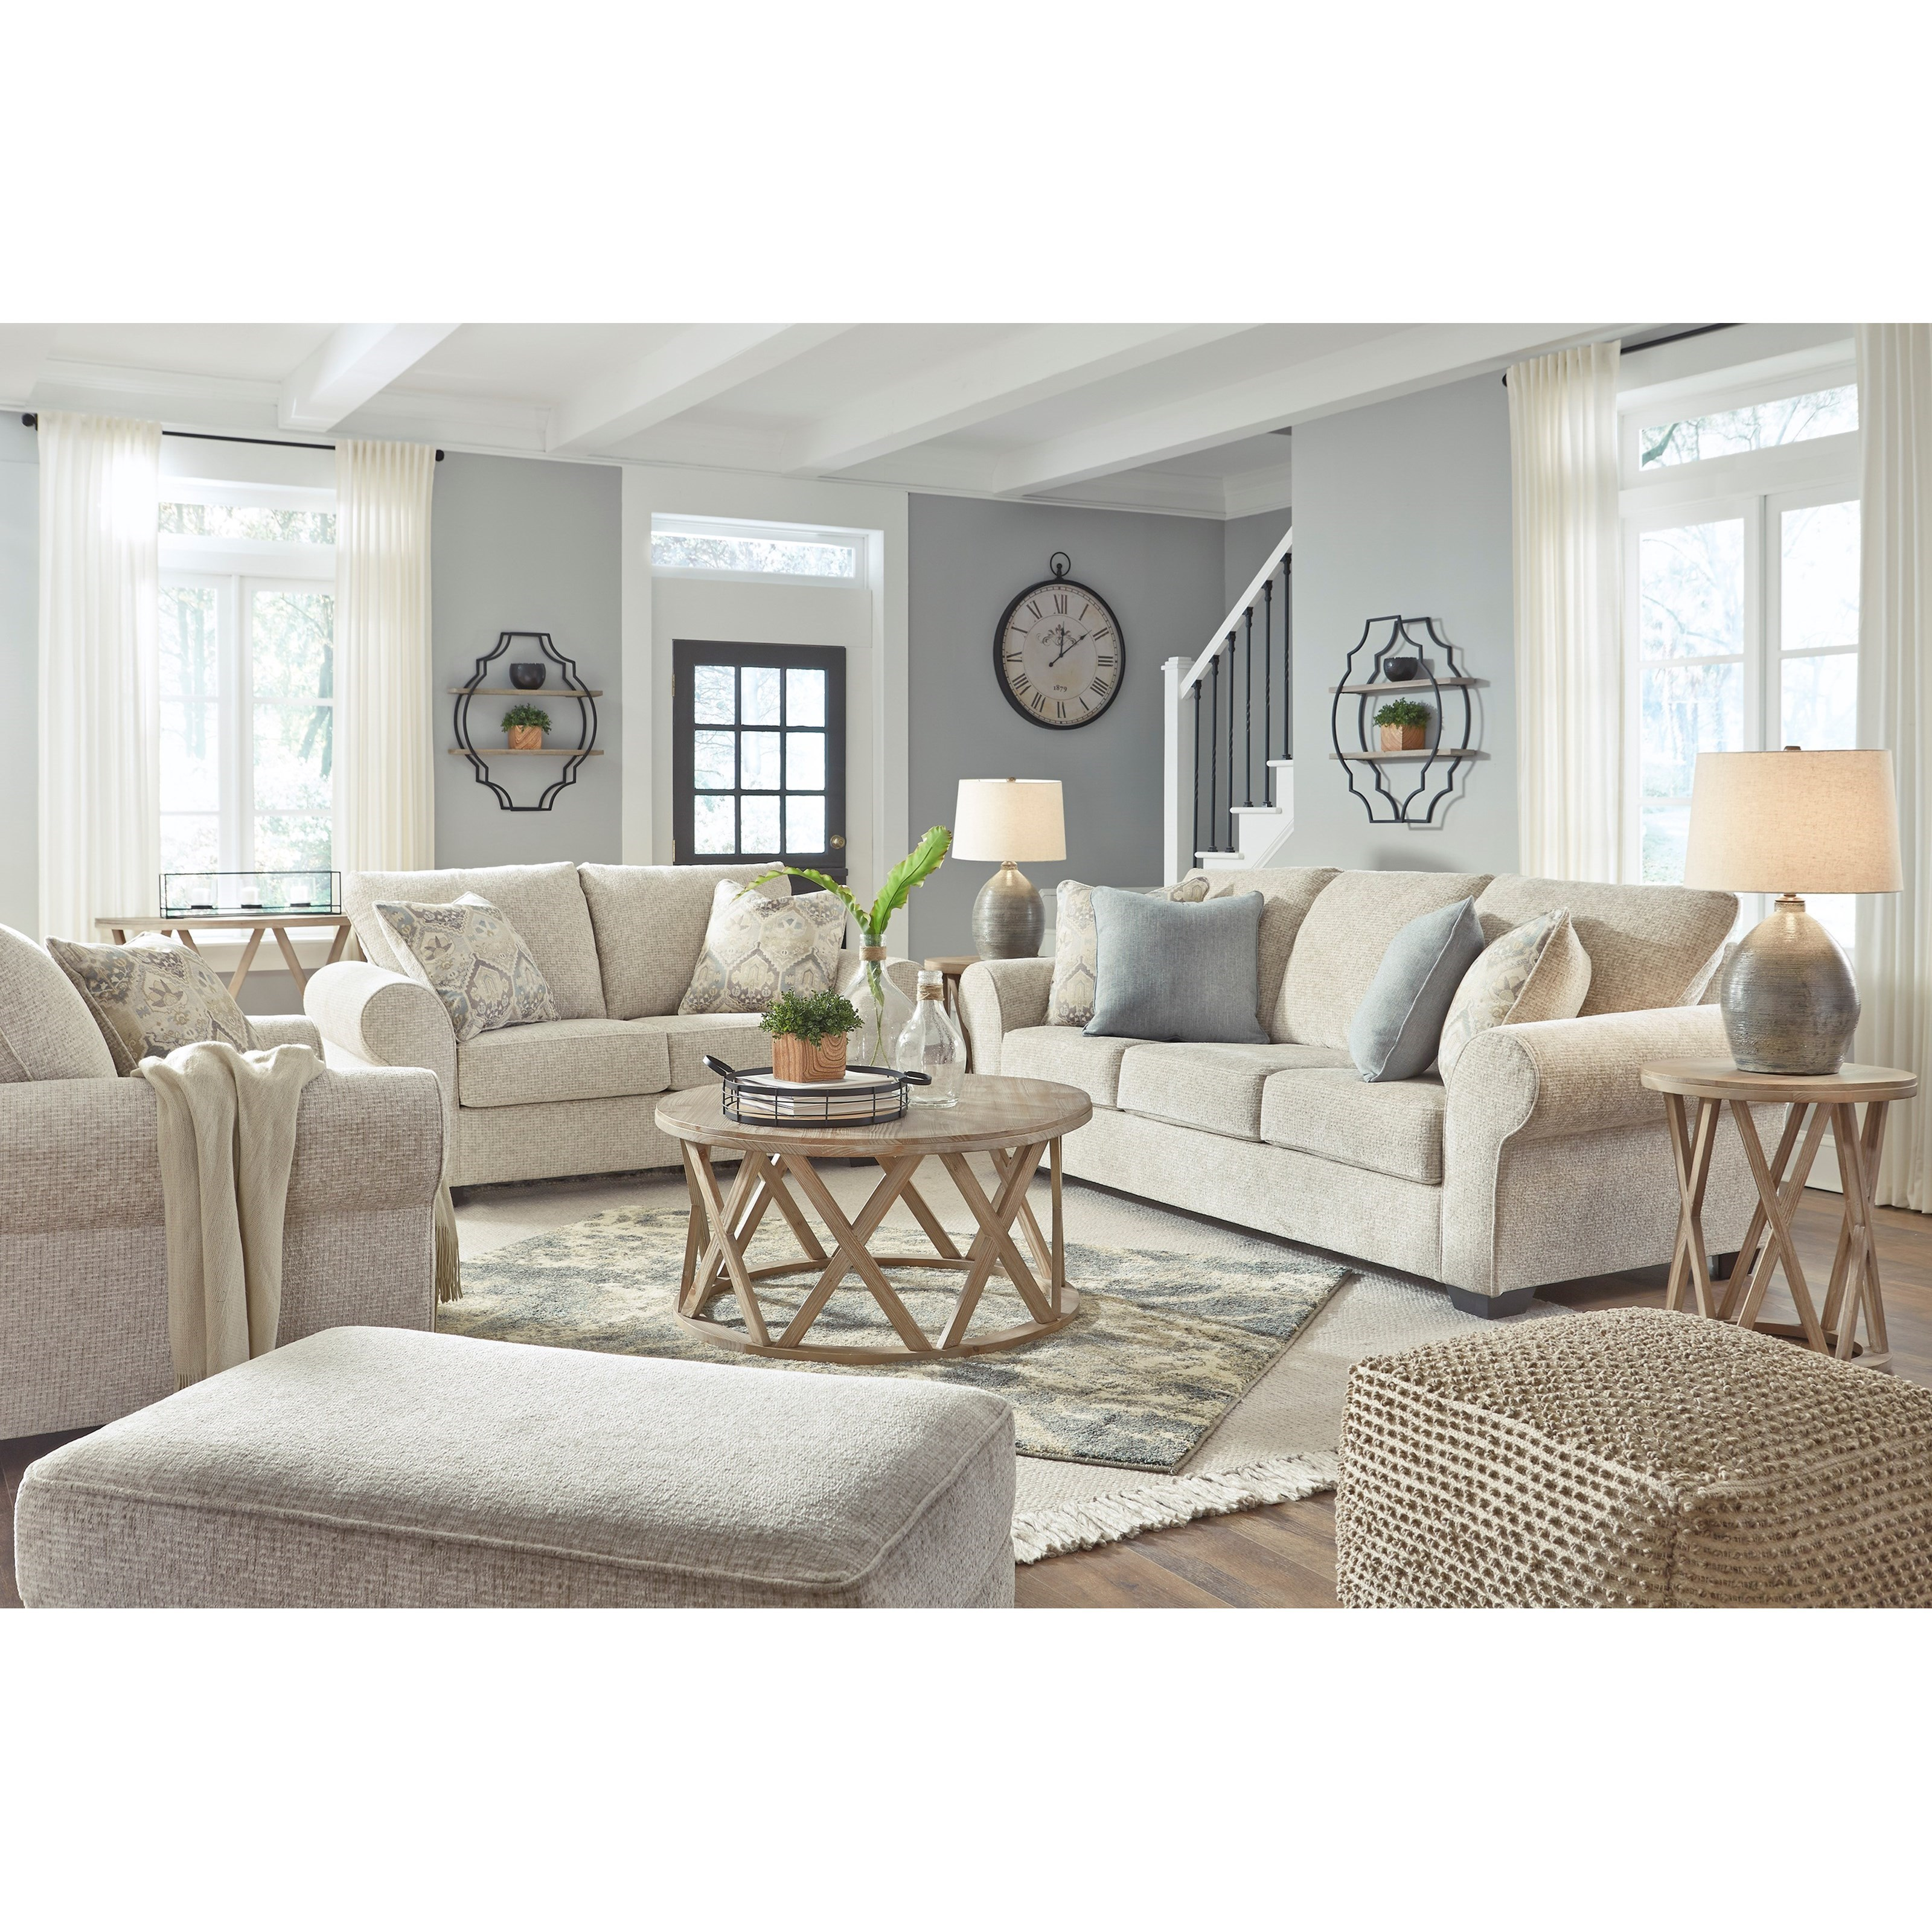 Haisley Living Room Group by Benchcraft at Northeast Factory Direct